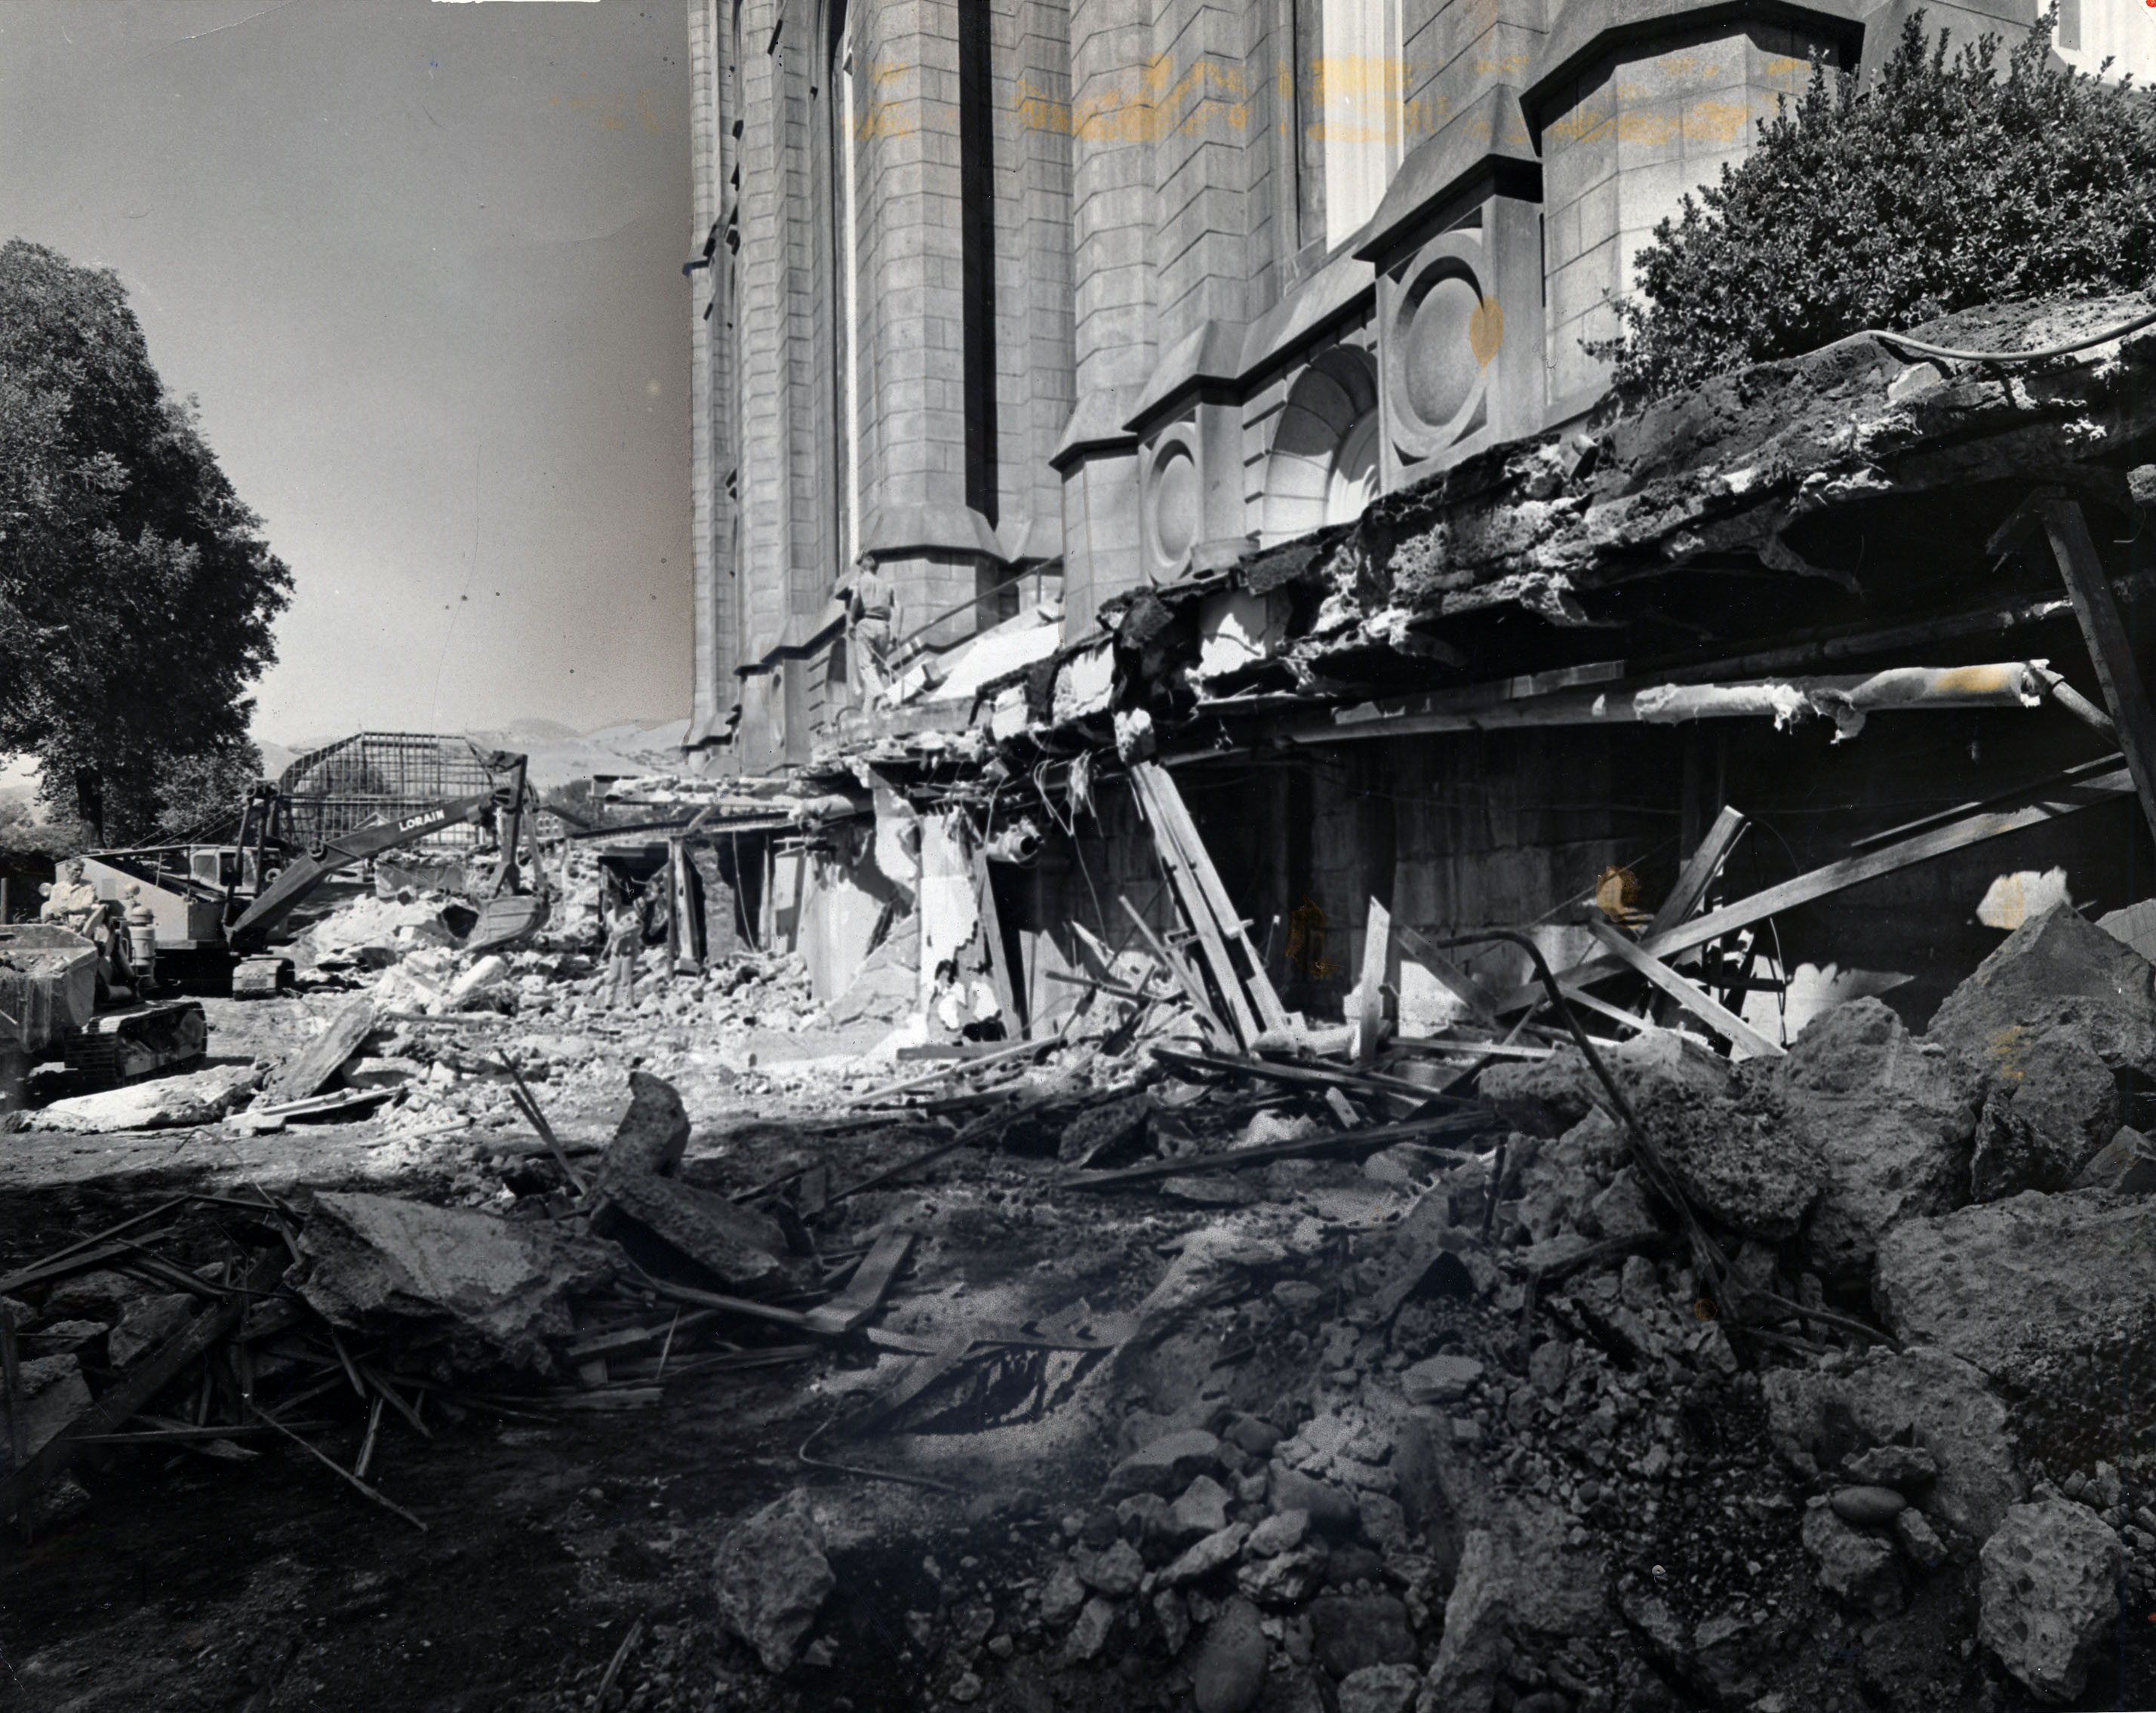 The Salt Lake Temple's foundation was exposed during an excavation in September 1962.